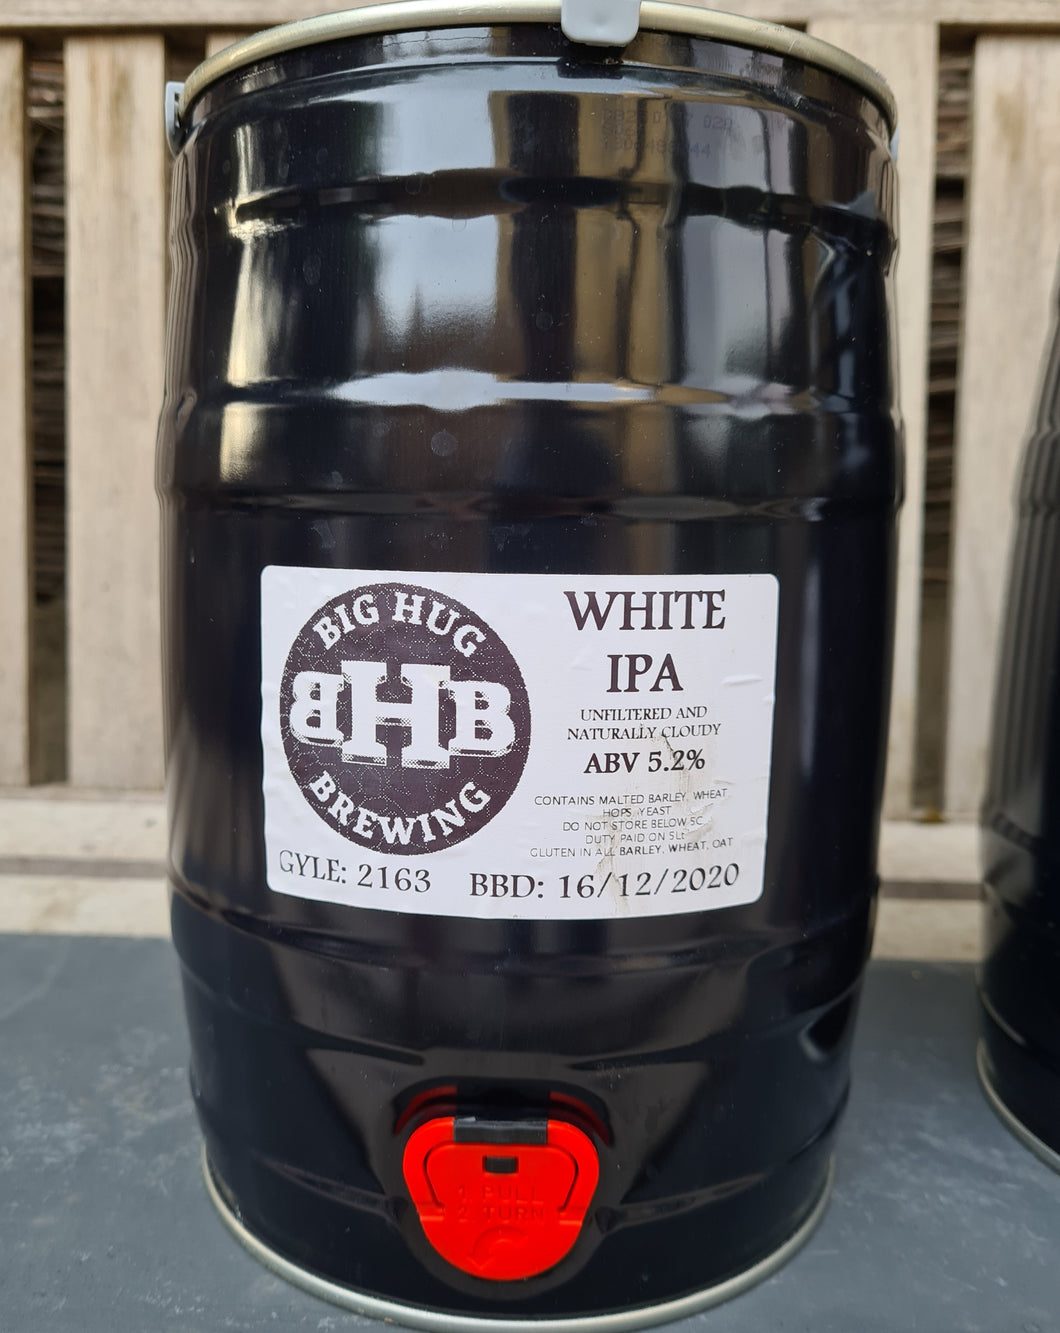 Big Hug - White IPA Mini Keg - 5.2% ABV (5Ltr)